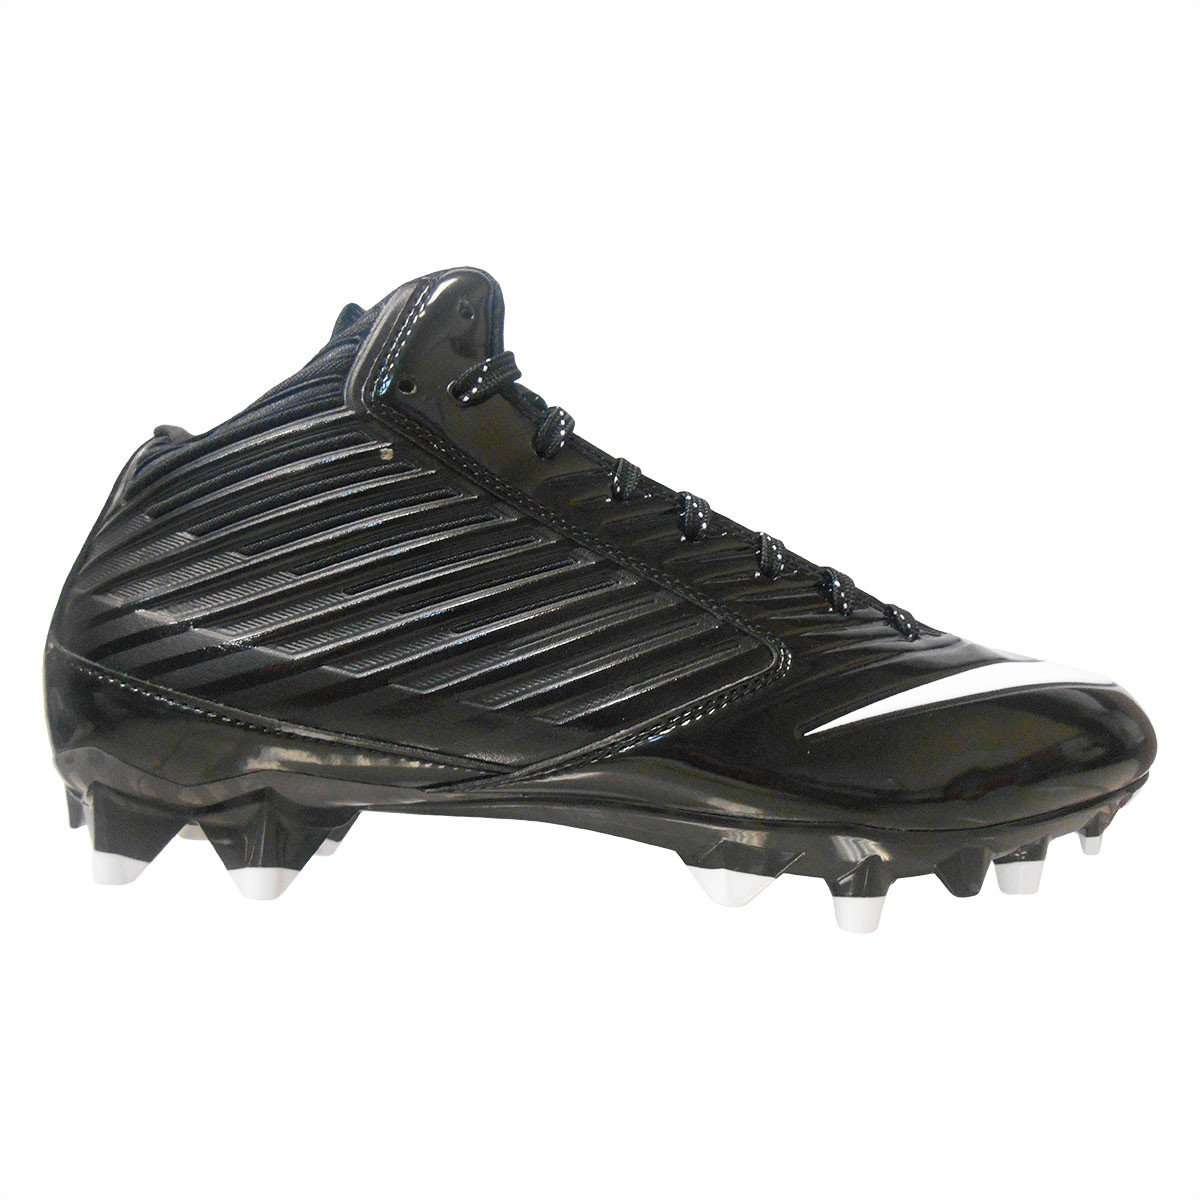 4f2231b4db47 Nike Vapor Speed 3/4 TD Football Cleats - League Outfitters